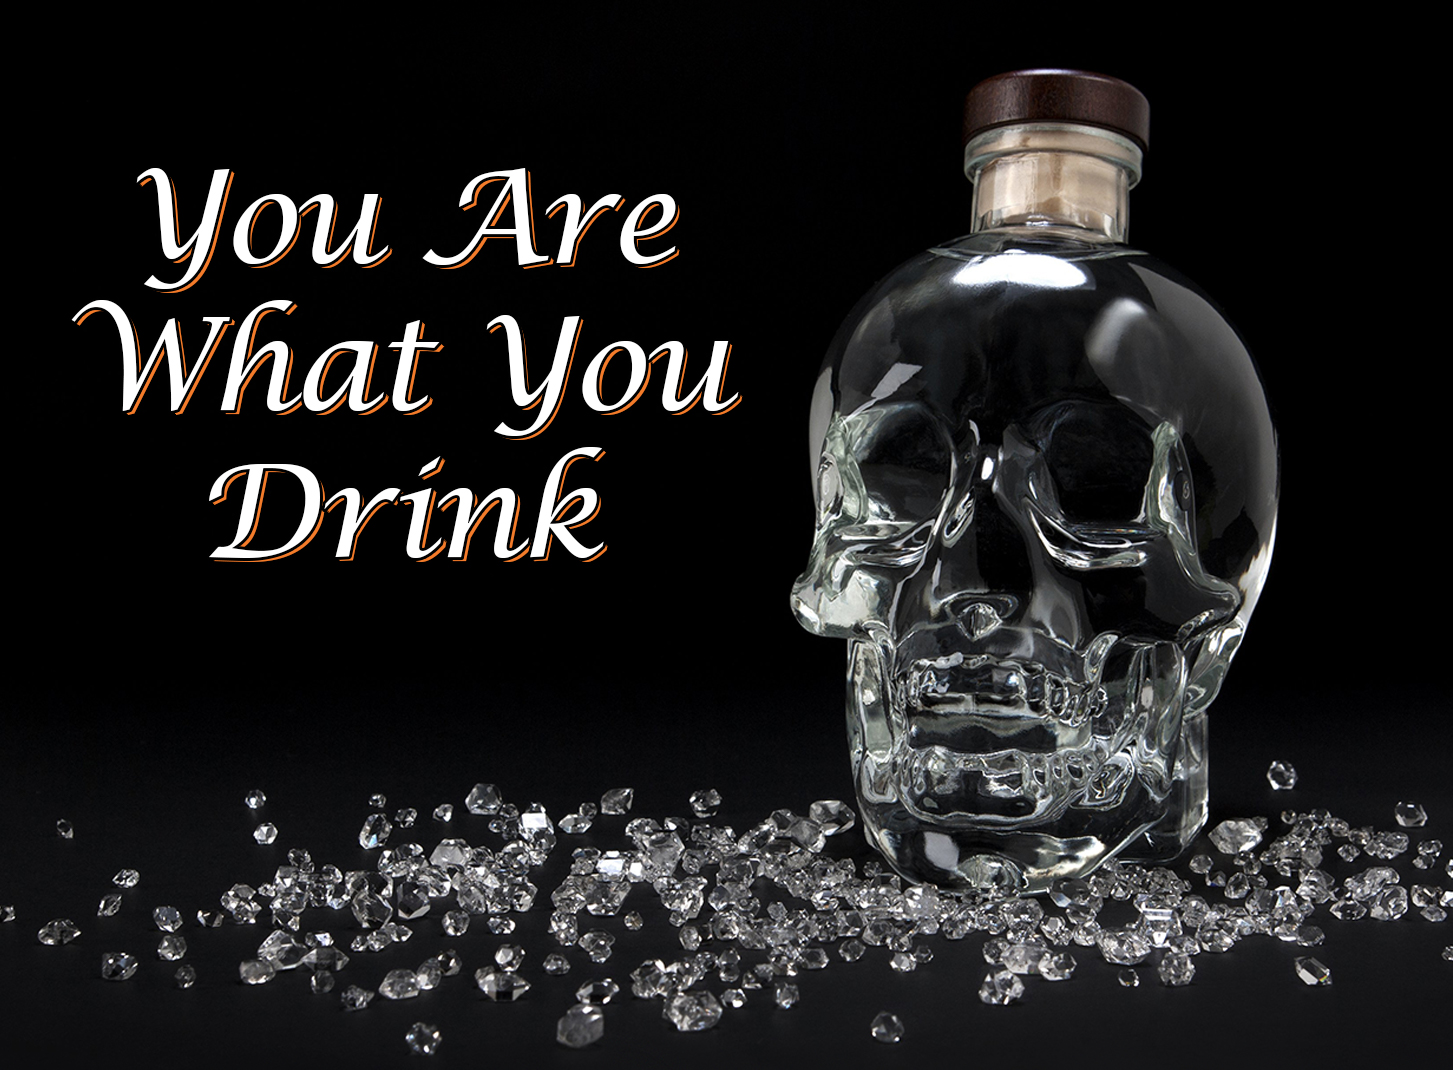 You Are What You Drink